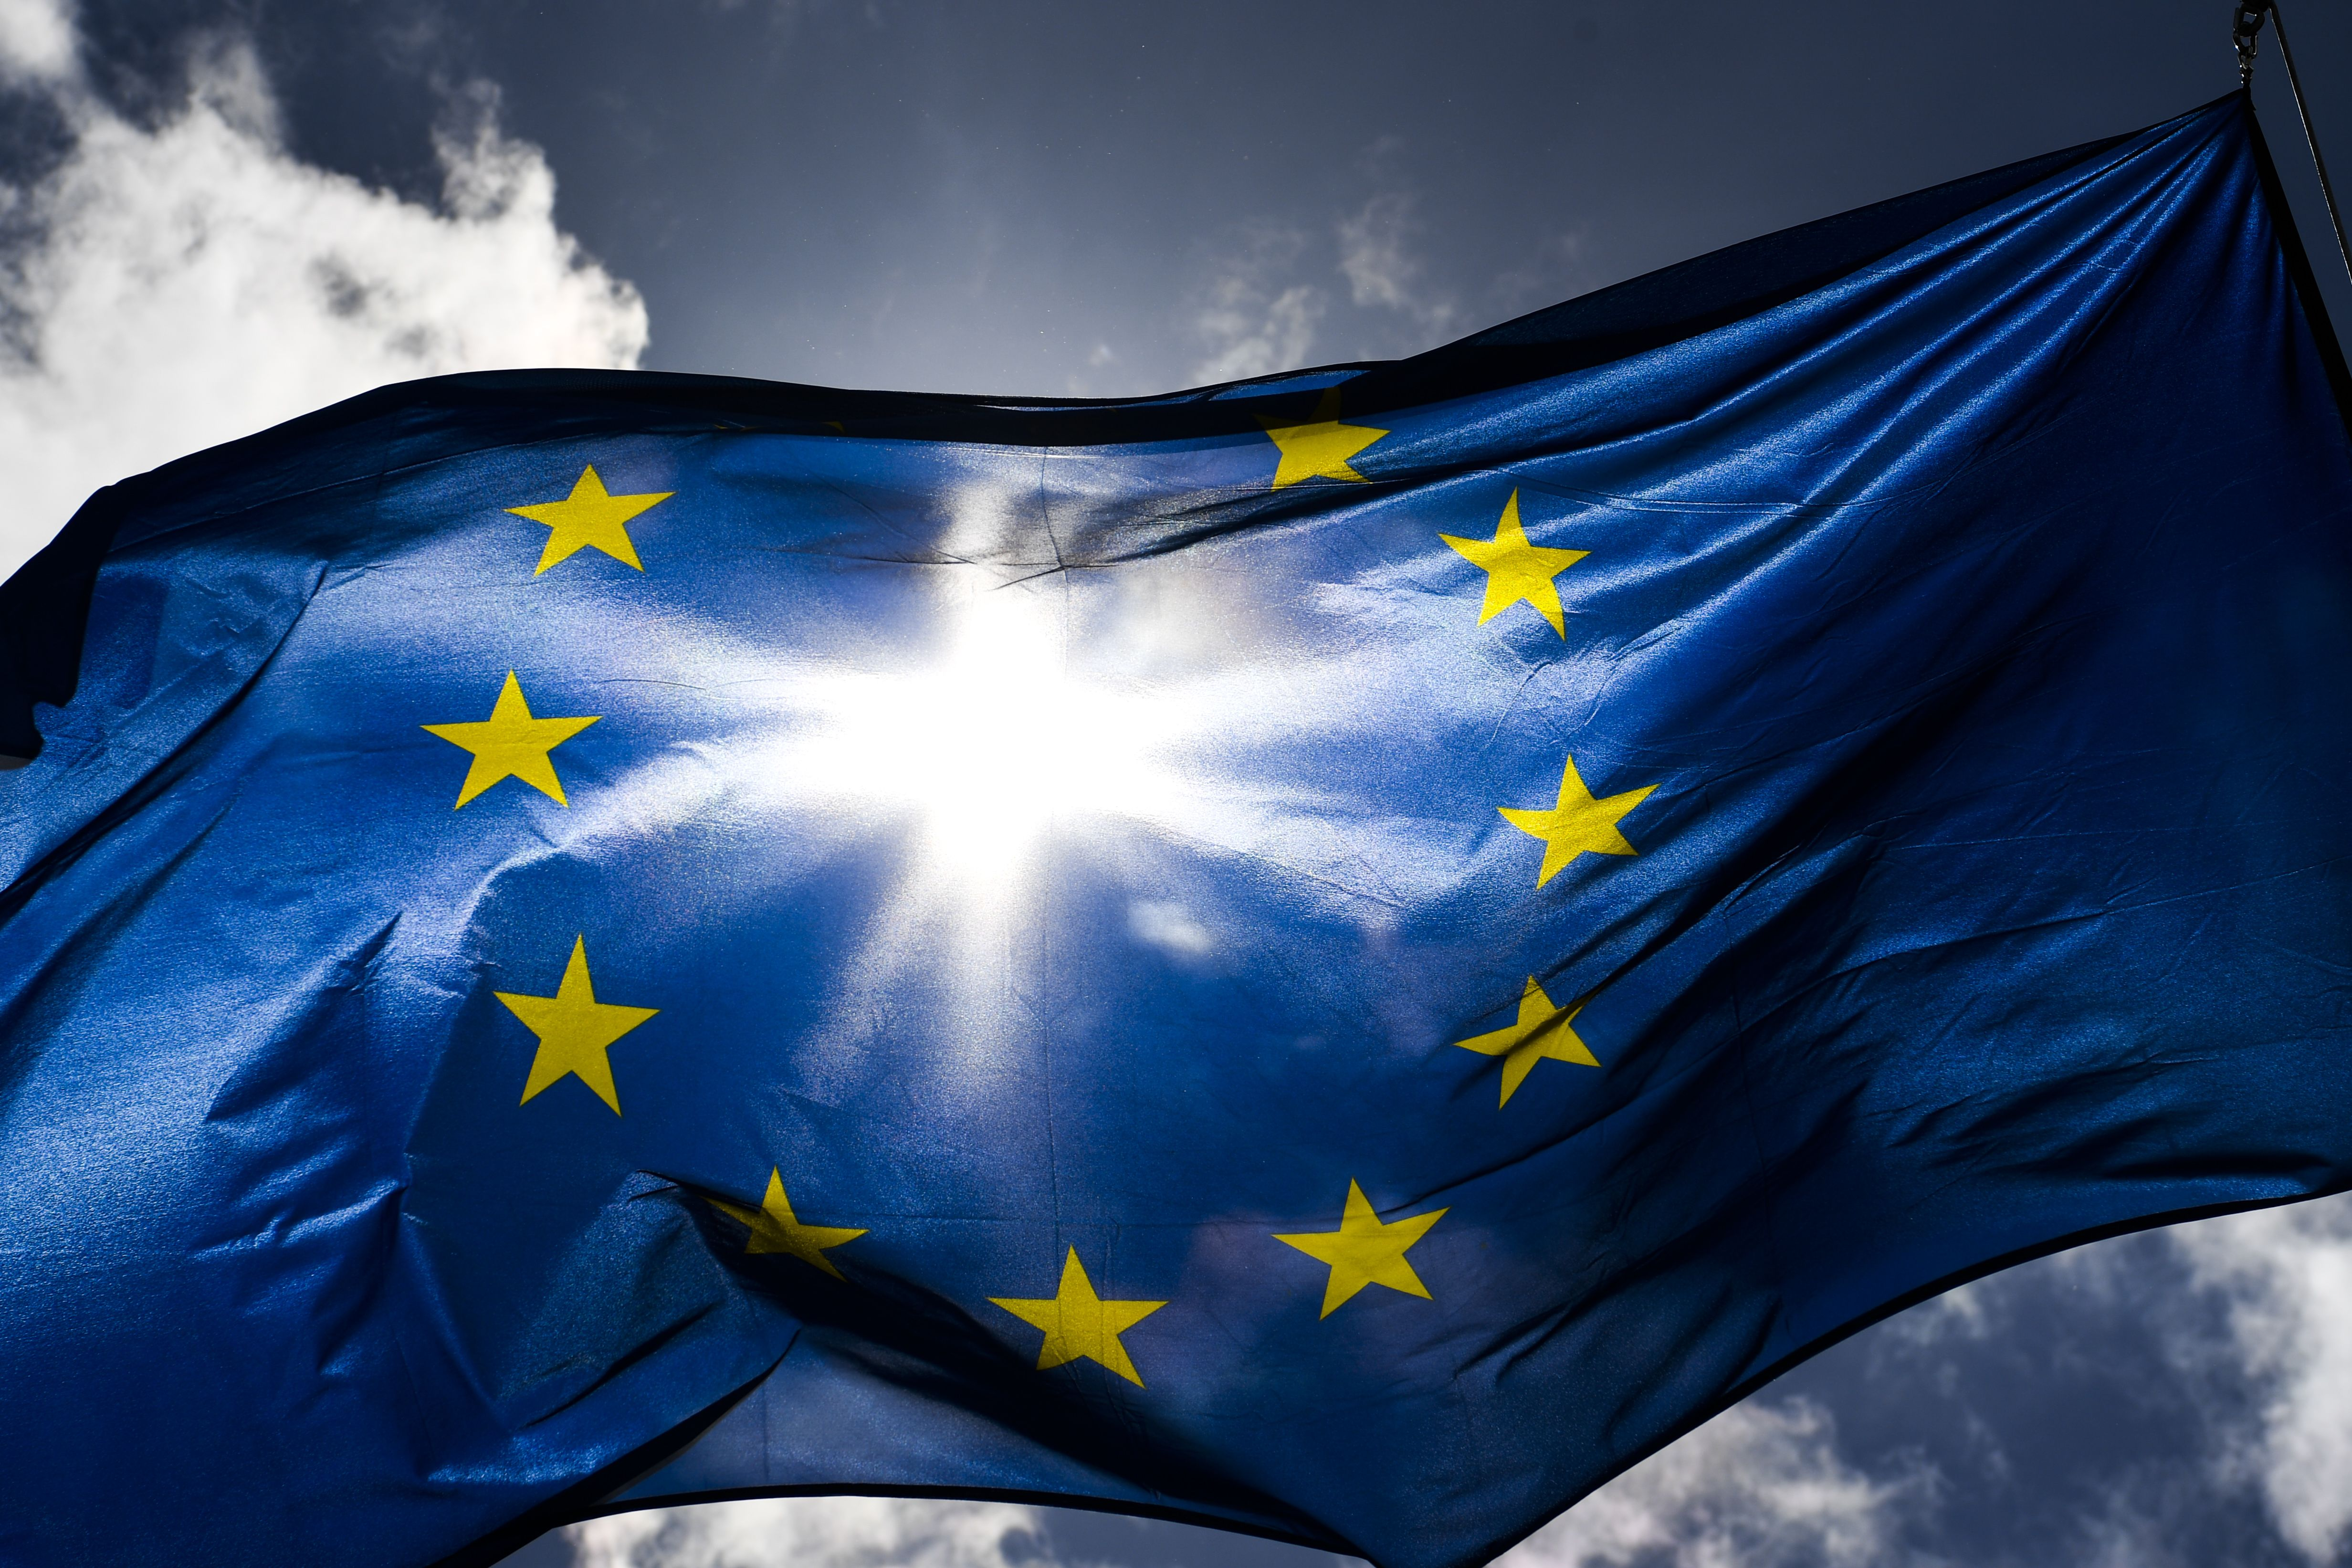 Startups, Media Companies Block European Users in Wake of New Privacy Laws